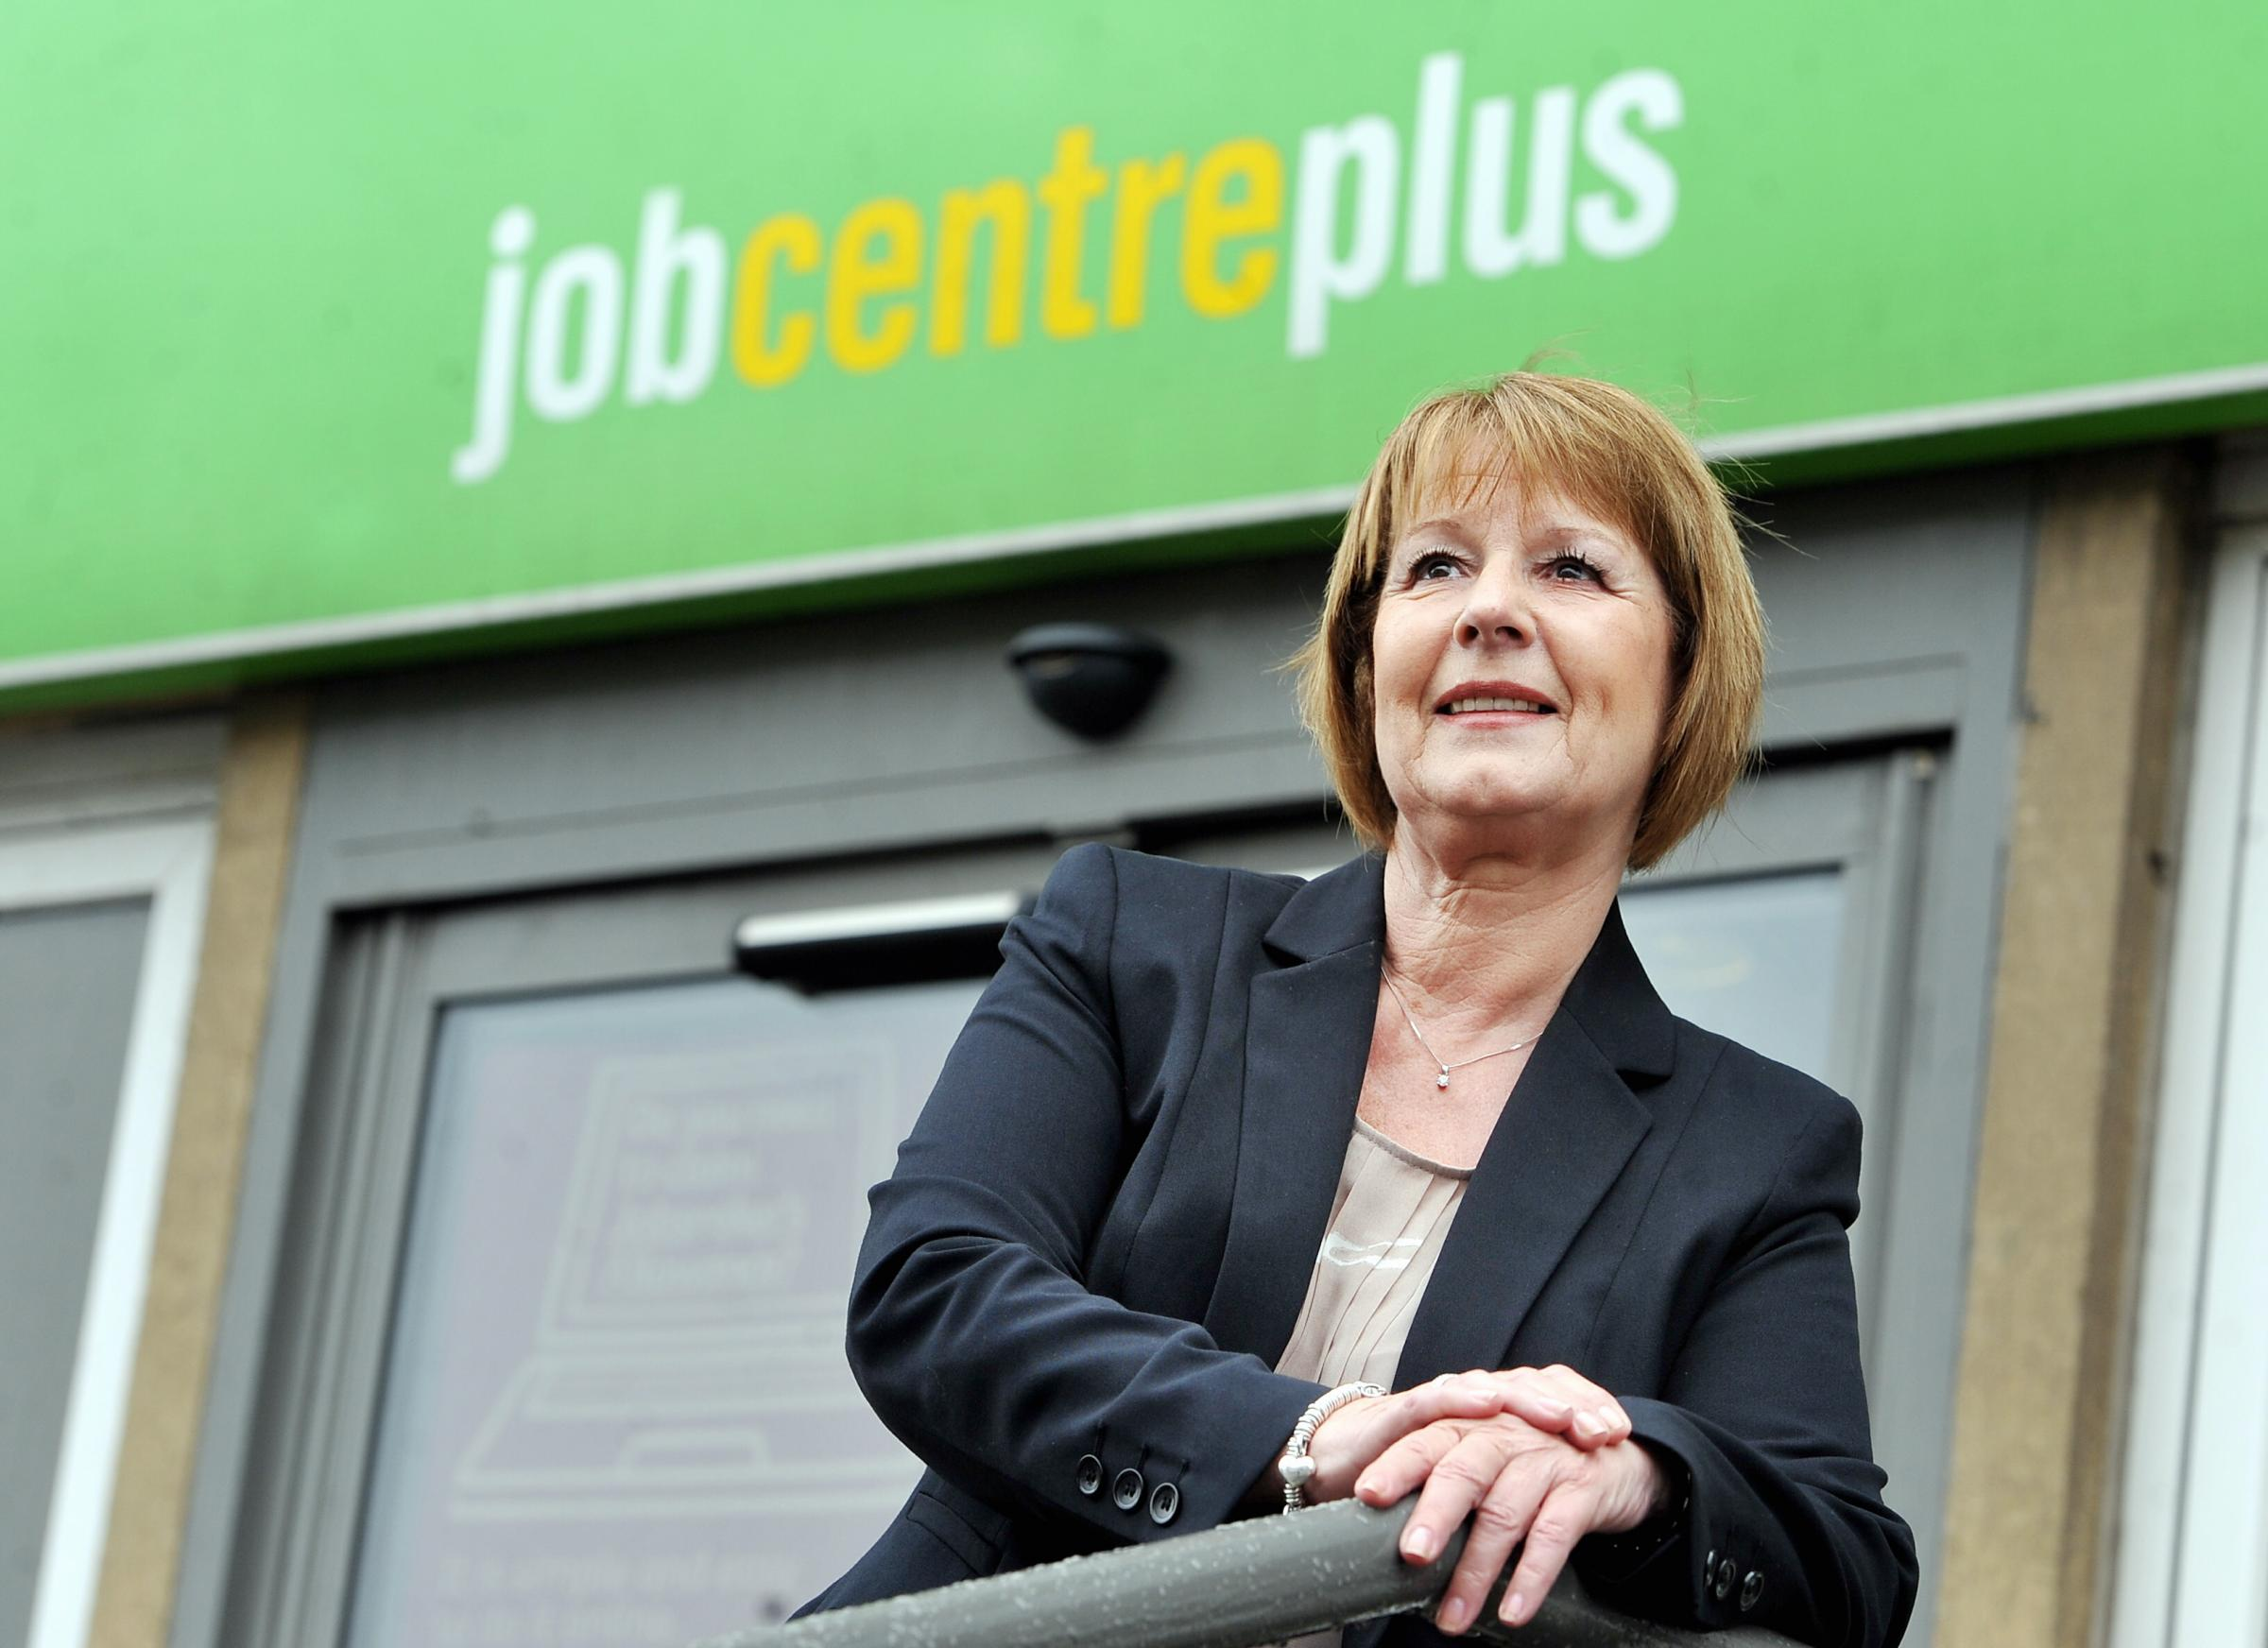 OPTIMISM: Diana Towler, employer and partnership manager for Bradford JobCentres, is encouraged by the fall in unemployment